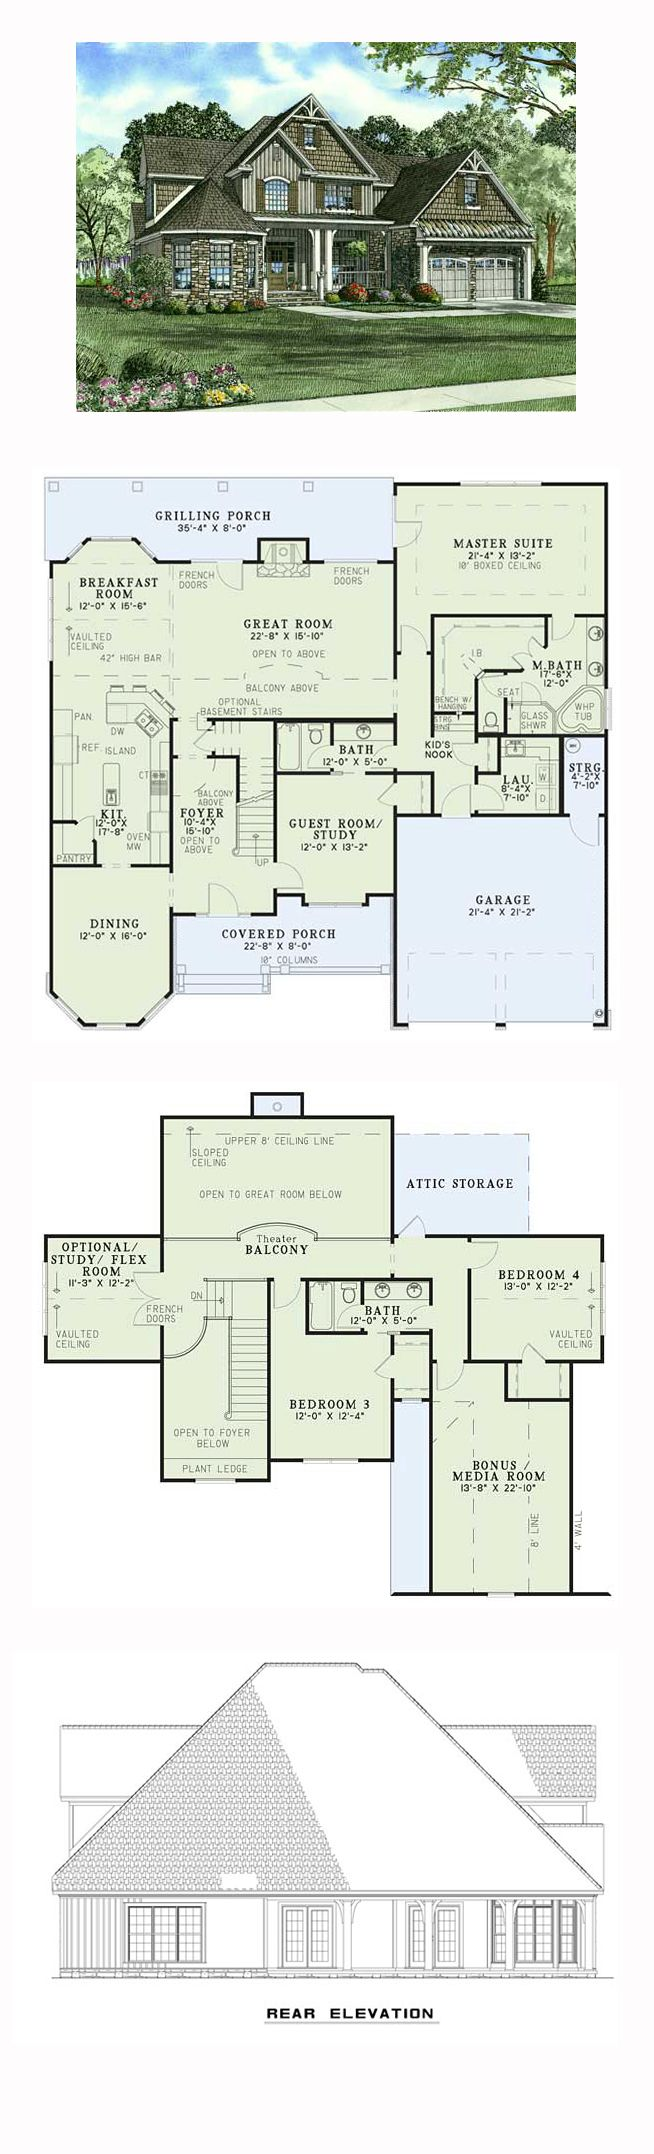 Blueprint Home Plans living room list of things House Designer